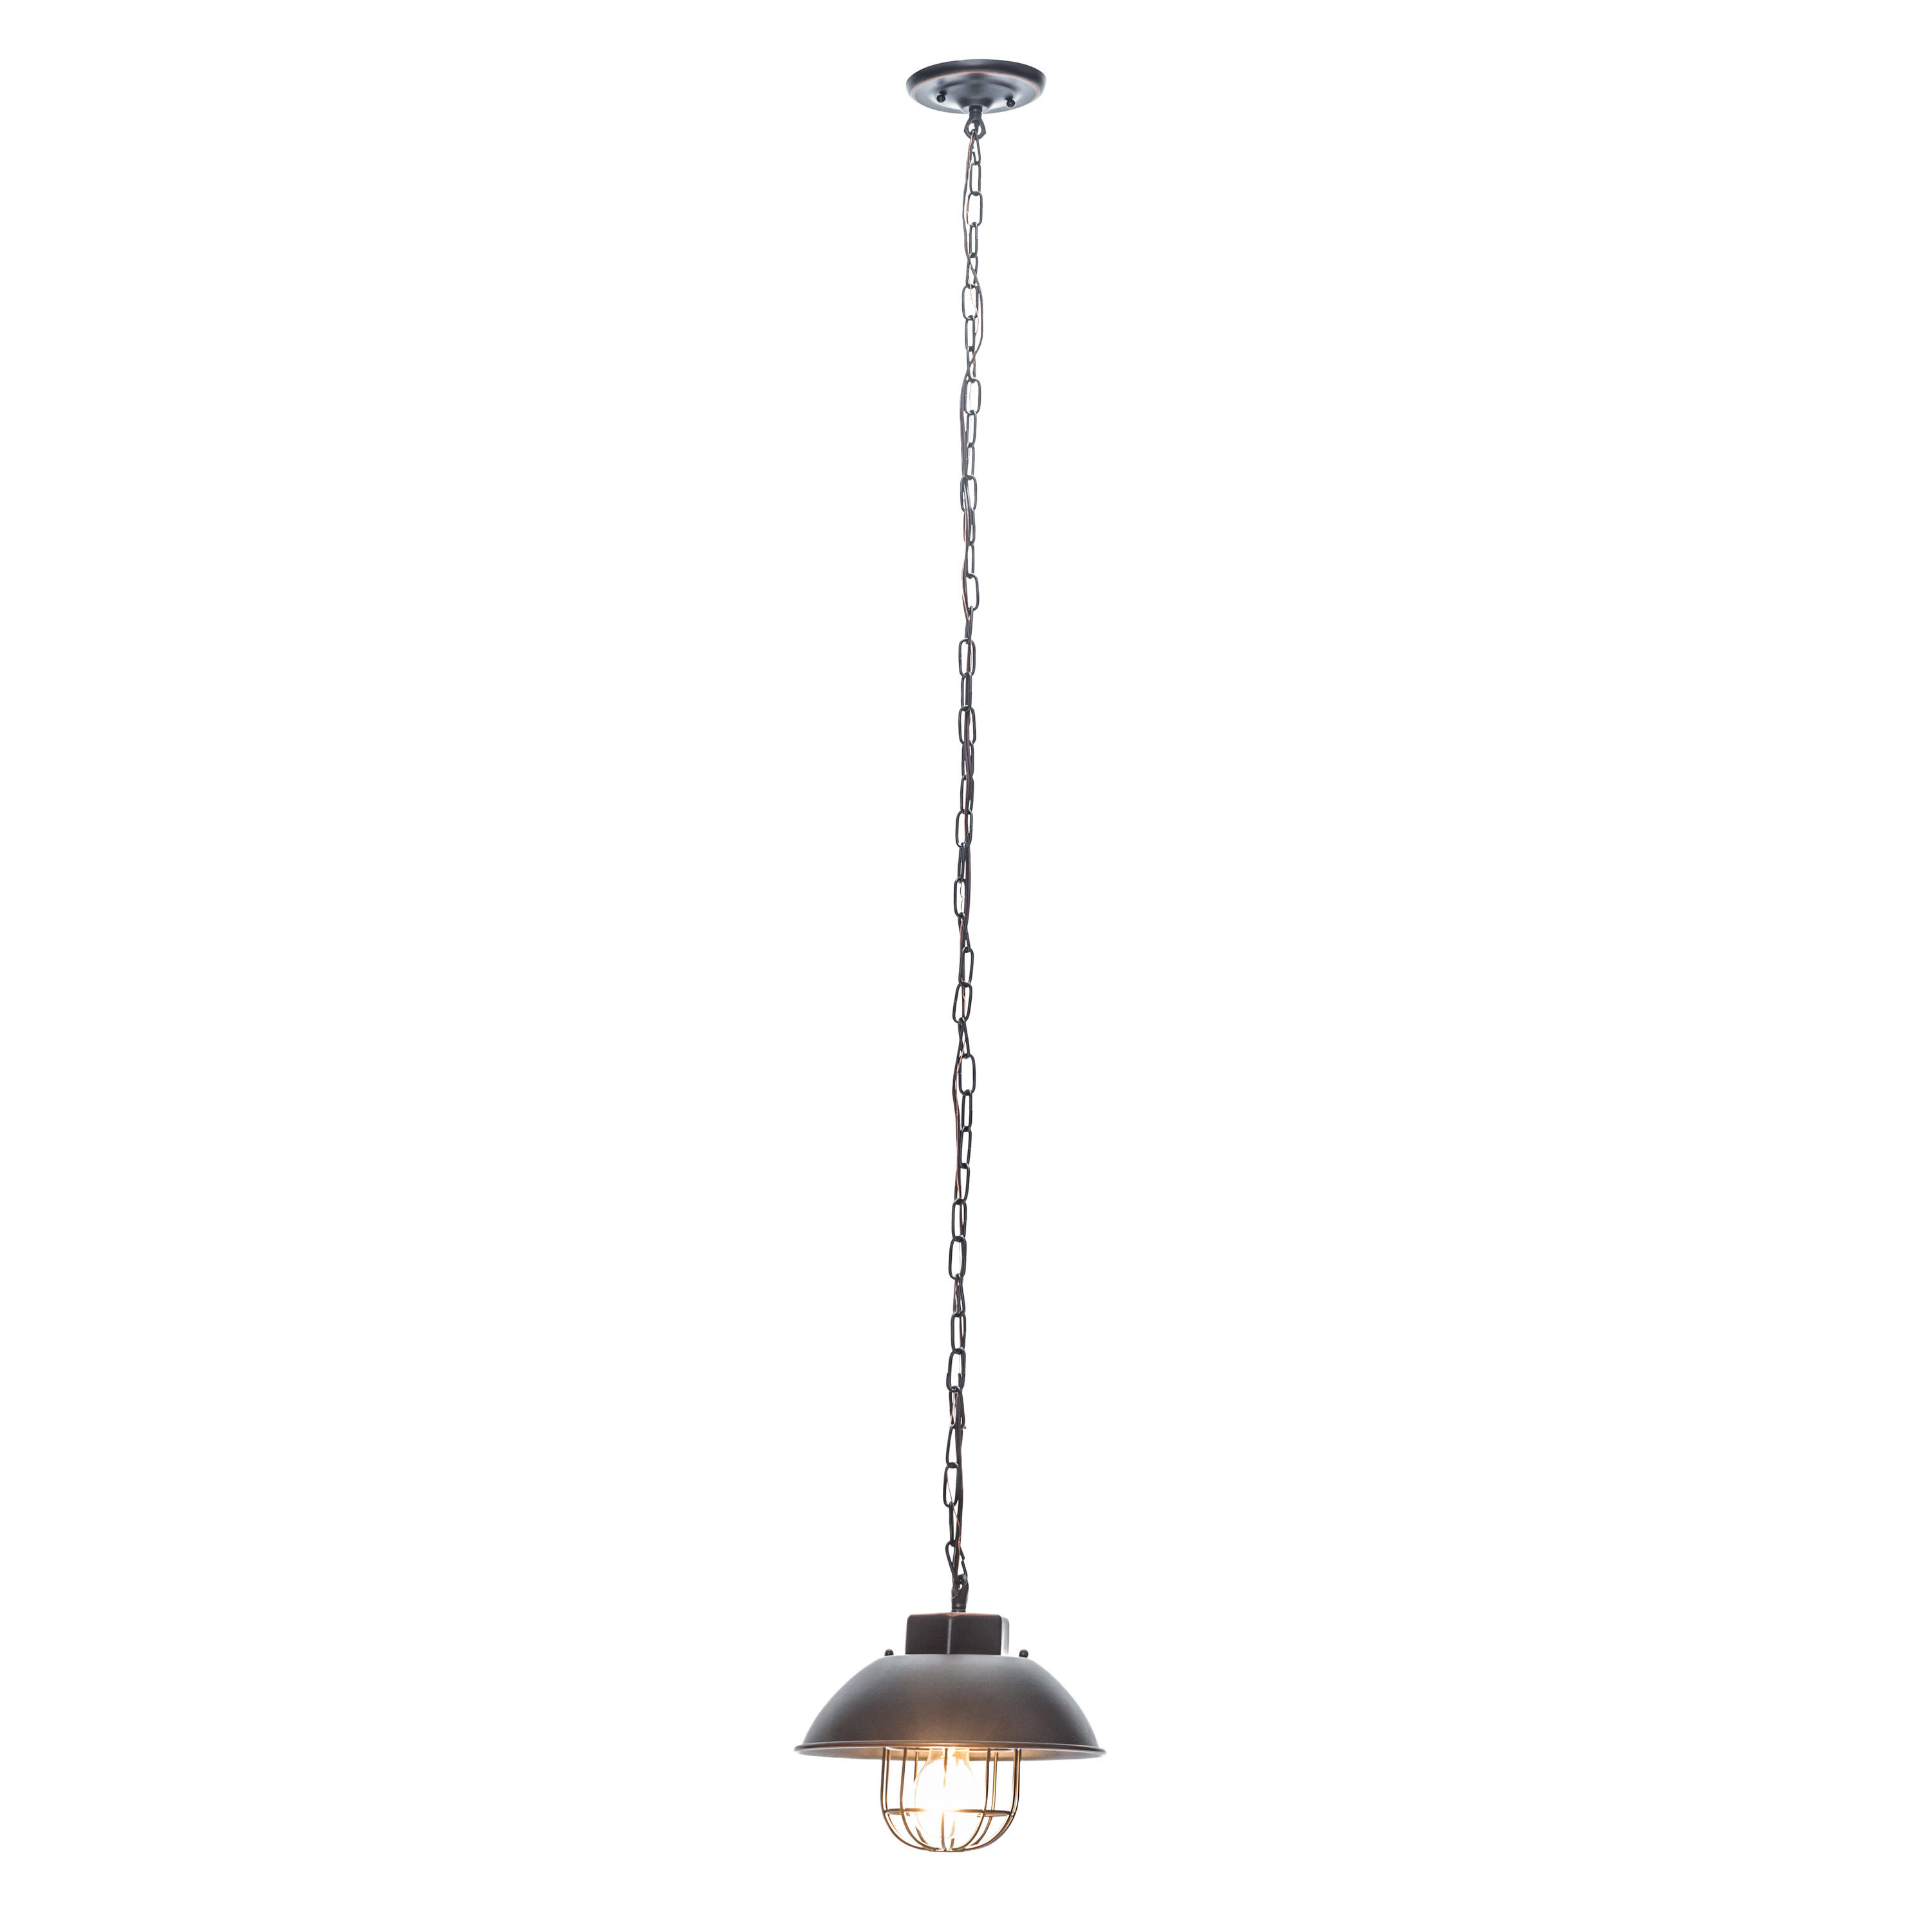 2020 Globe Electric 1 Light Oil Rubbed Bronze Vintage Edison Over Bulb Cage  Pendant, 64834 With Regard To Vintage Edison 1 Light Bowl Pendants (View 15 of 25)